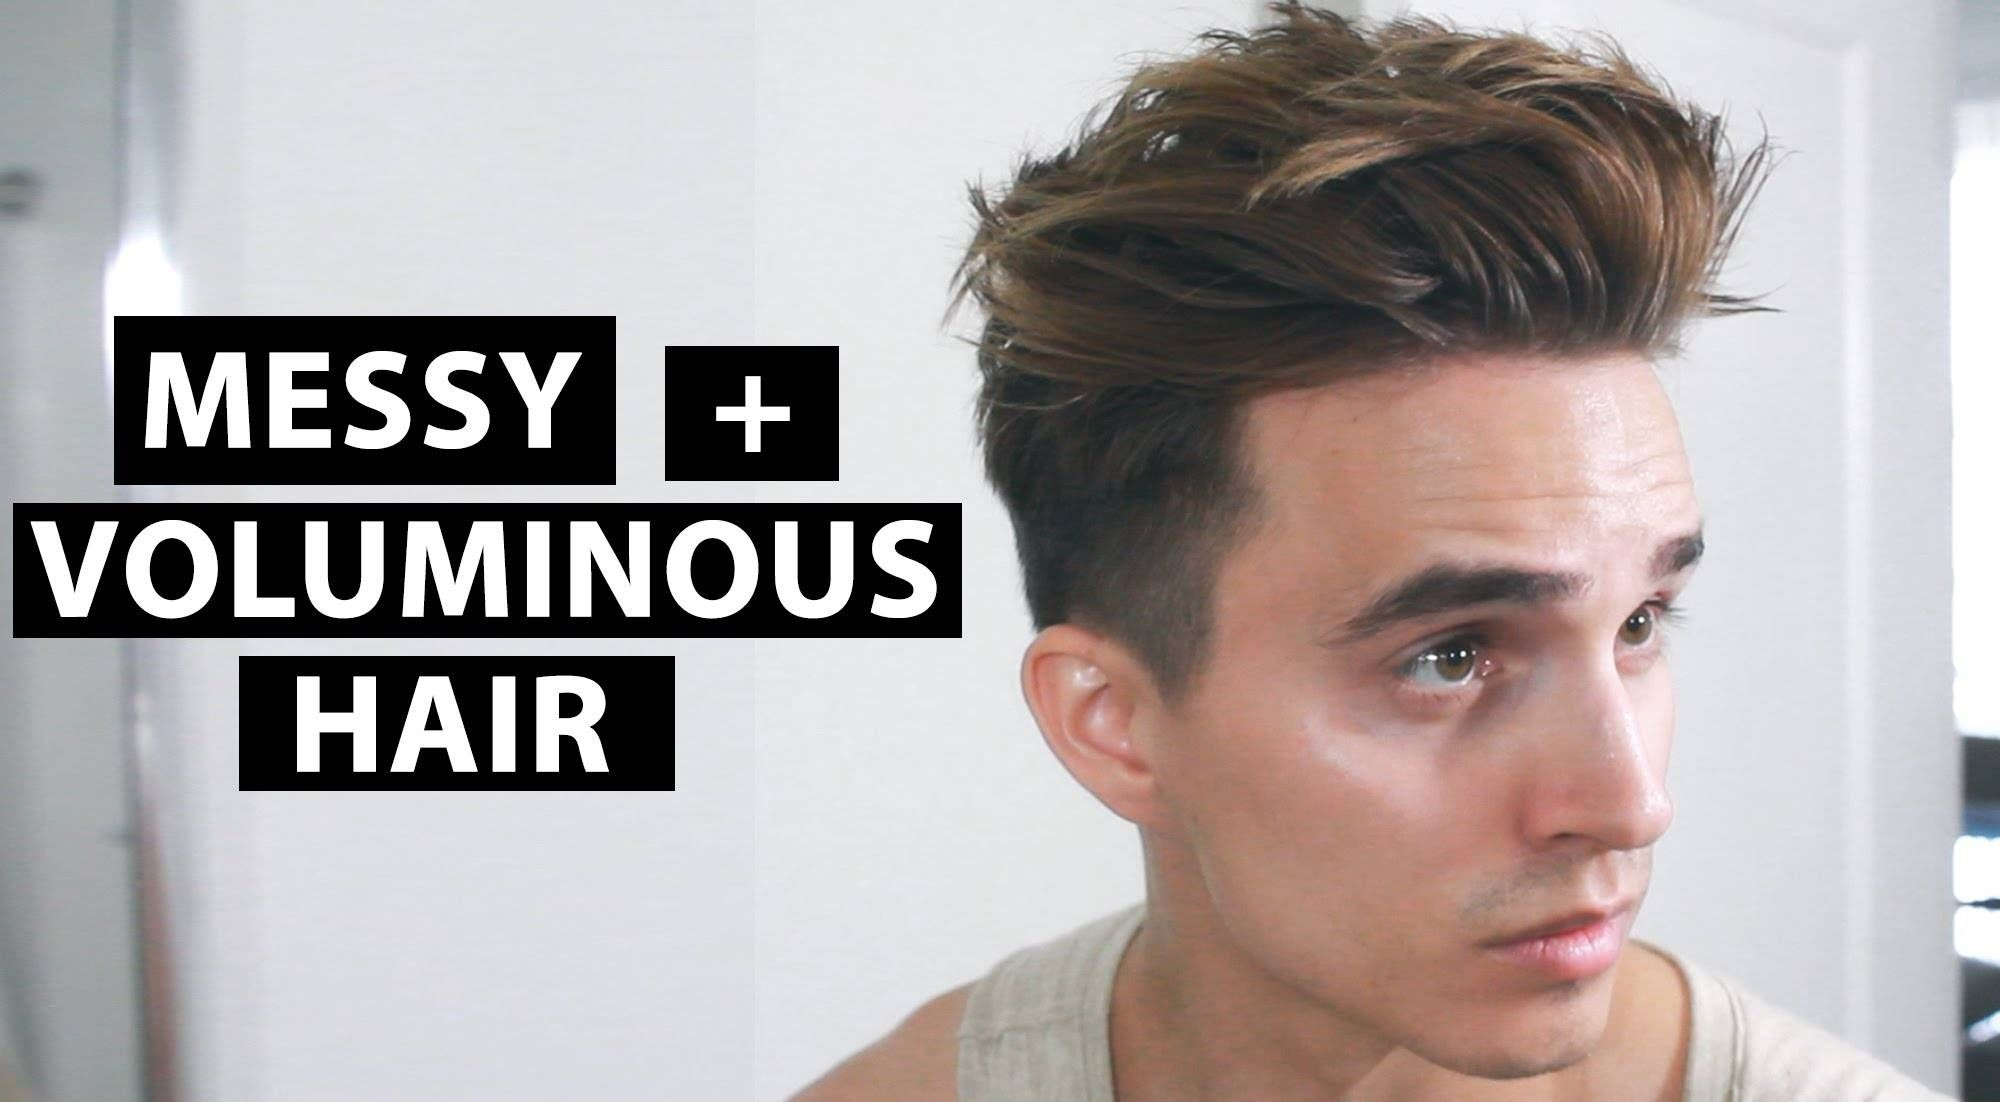 Messy Voluminous Hair Men S Hairstyle Tutorial Youtube Voluminous Hair Hair Tutorial Messy Hairstyles